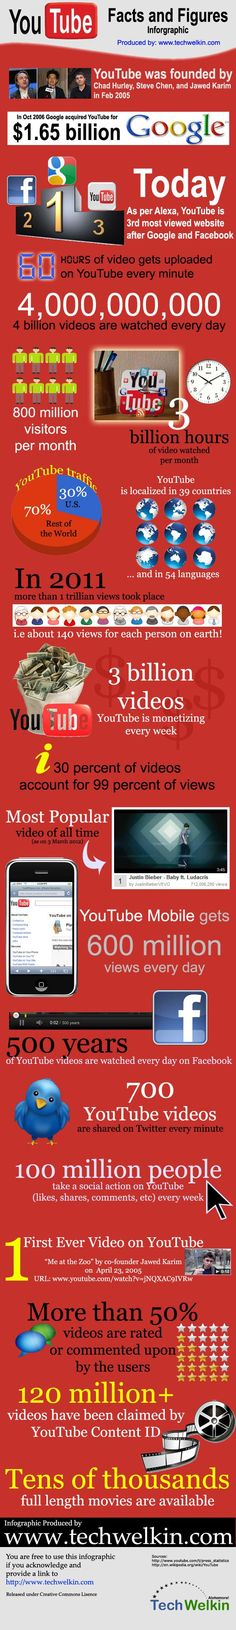 Youtube en Cifras... I Love InfoGraphics.. This one is interesting to me. #Bags